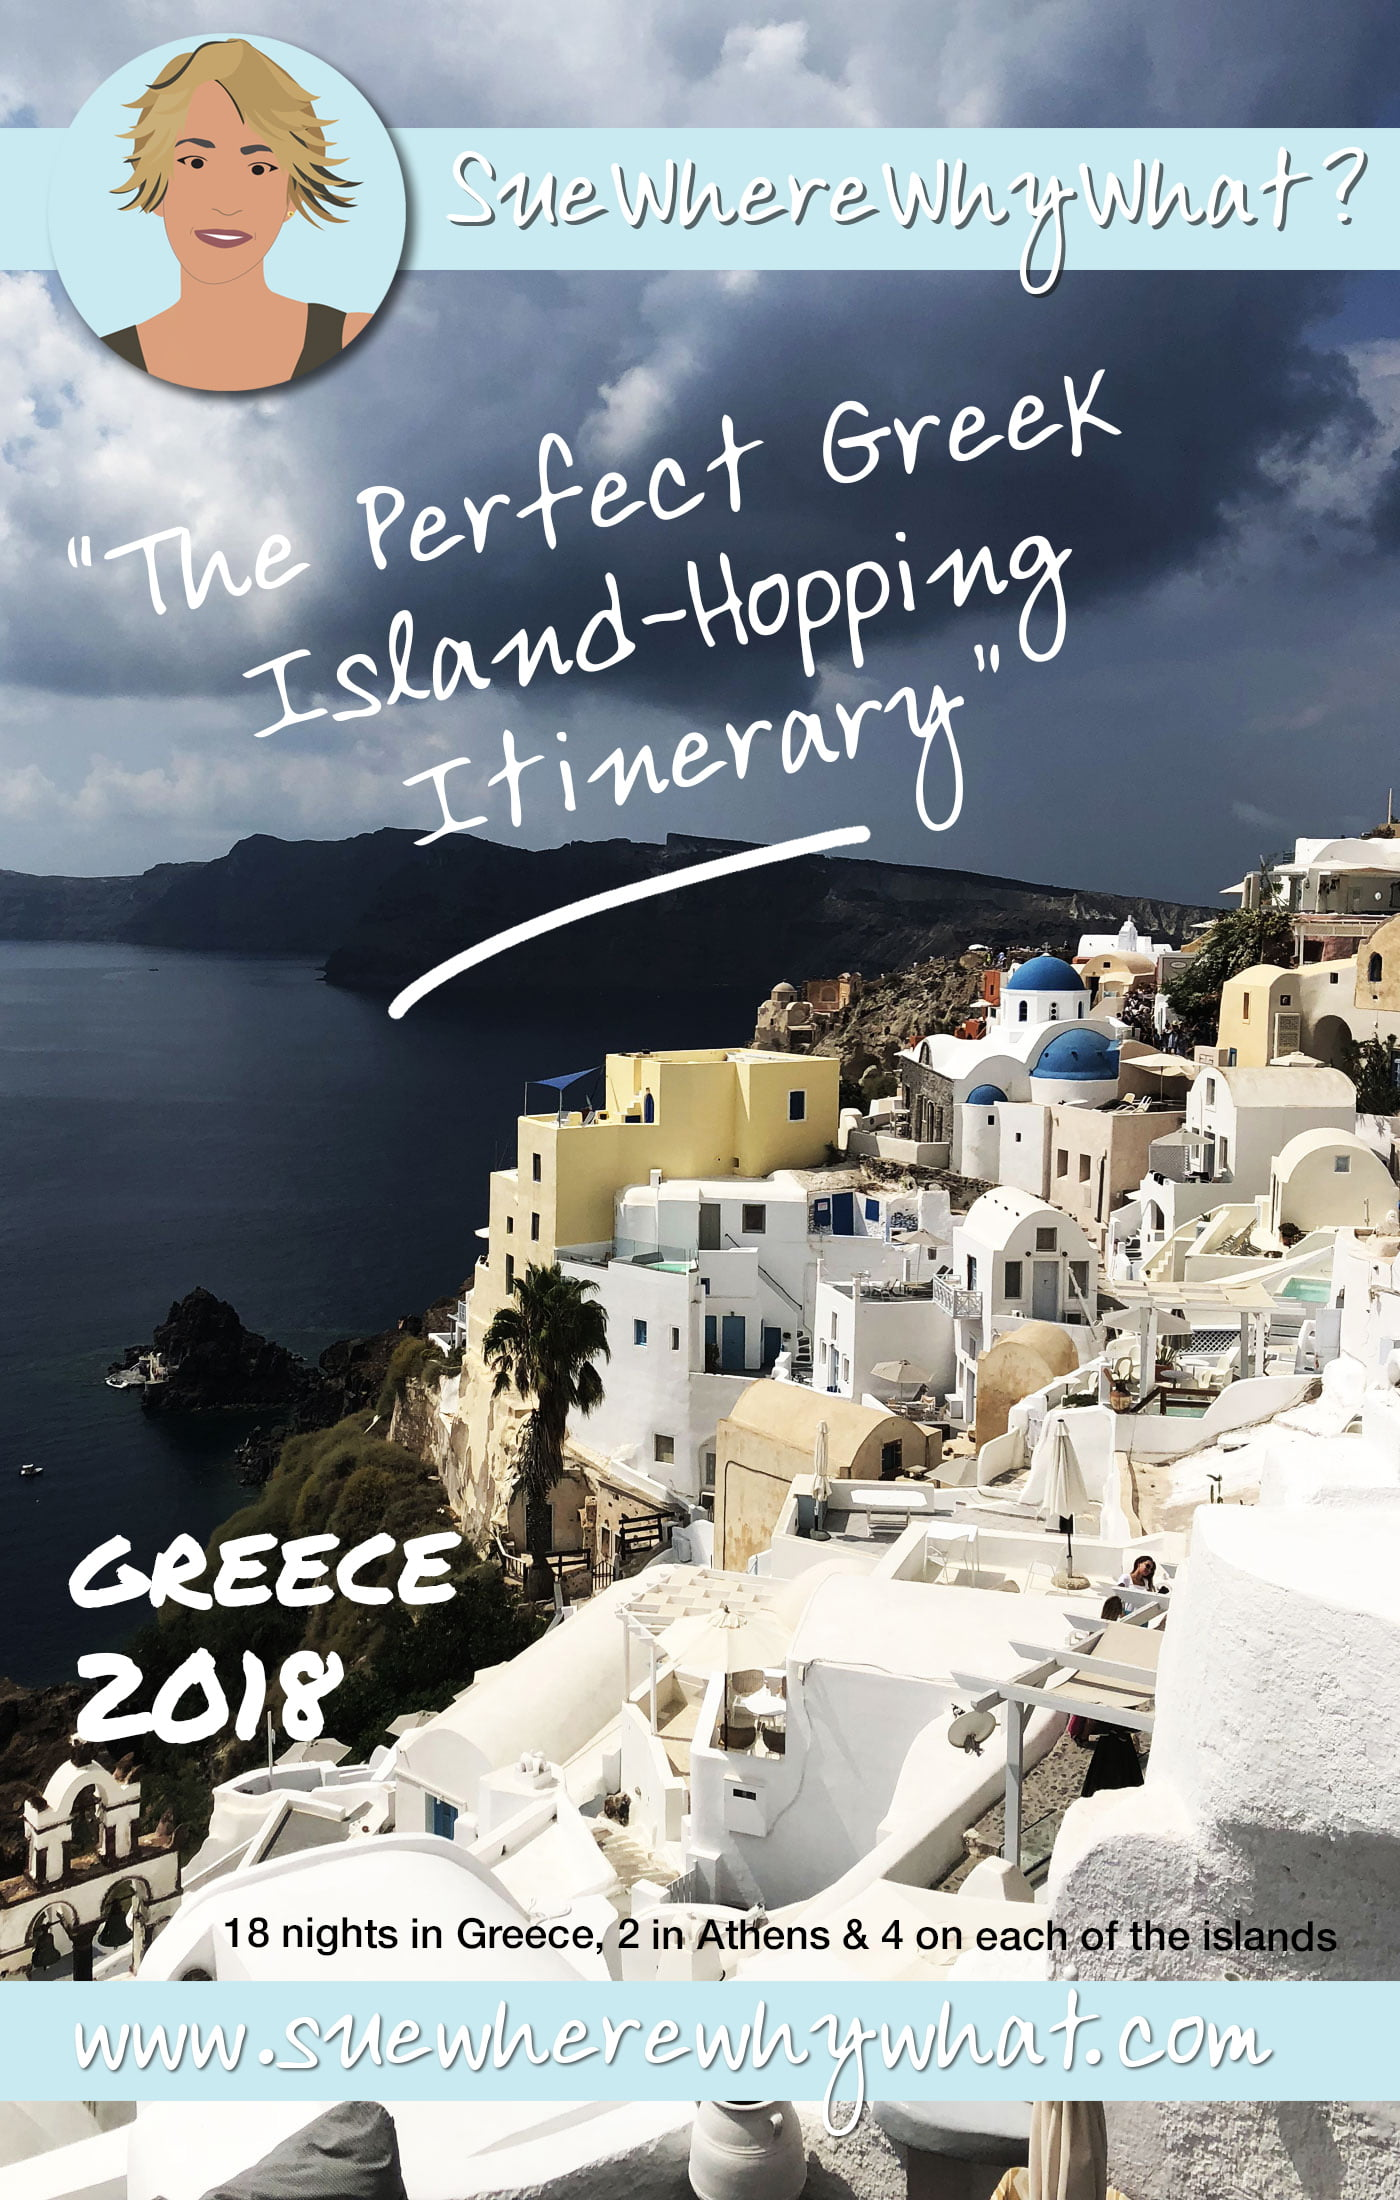 The Perfect Greek Island-Hopping Itinerary. A Greek Island-hopping trip is one of my favourite 2 week holidays, so much so I recently visited for my 6th time. Includes favourite Islands Santorini, Paros, Naxos & Milos as well as Athens & the Acropolis. https://www.suewherewhywhat.com/the-perfect-greek-island-hopping-itinerary